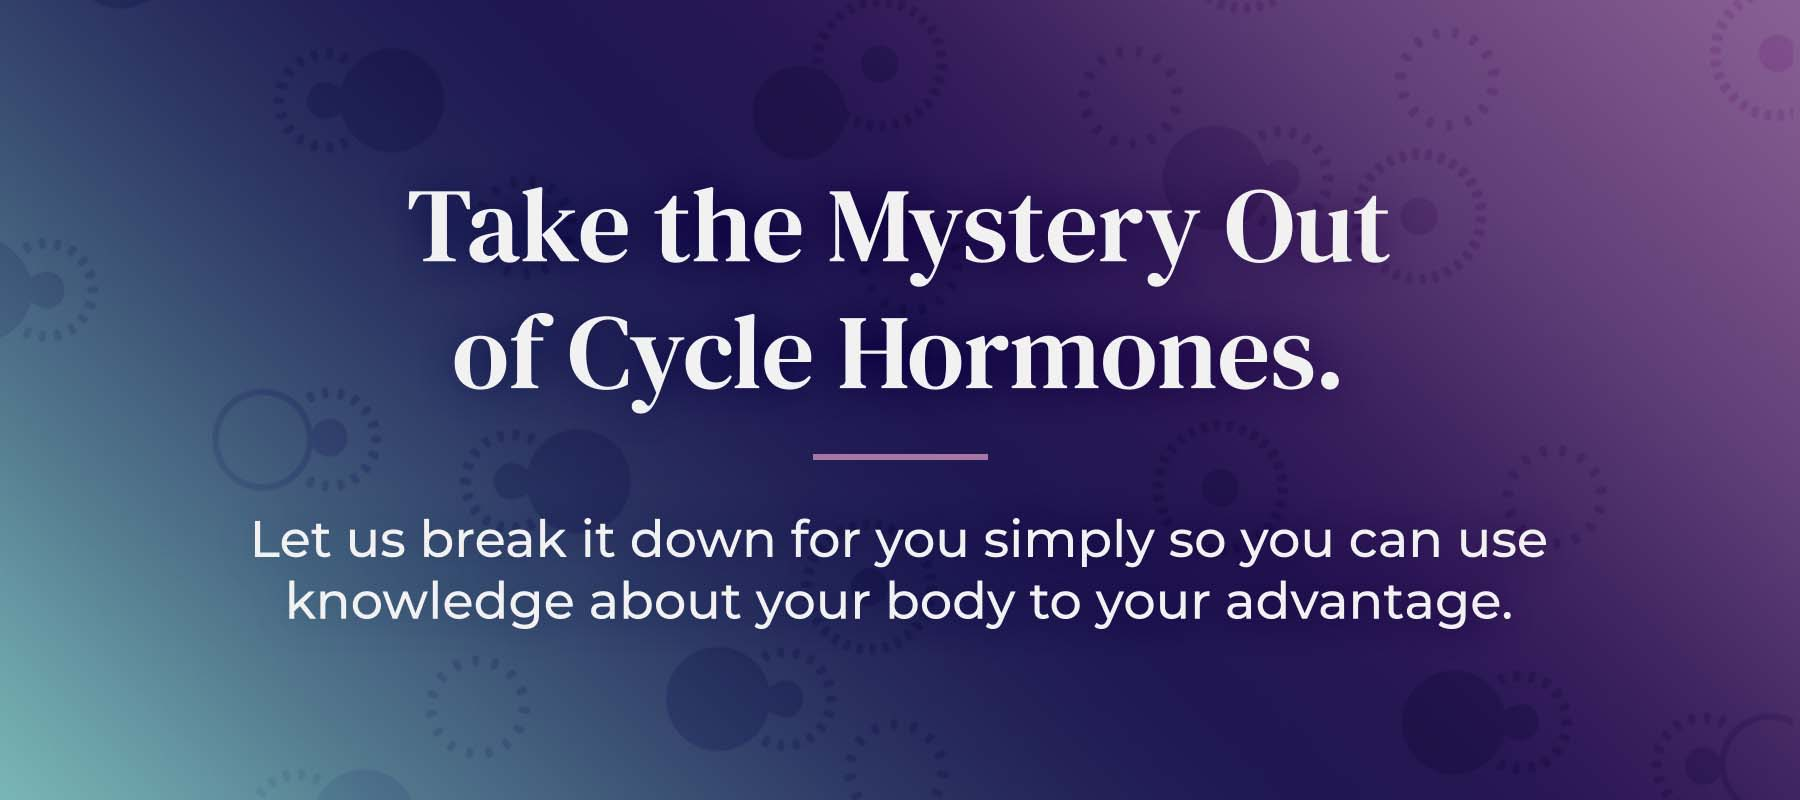 Take the Mystery Out of Cycle Hormones